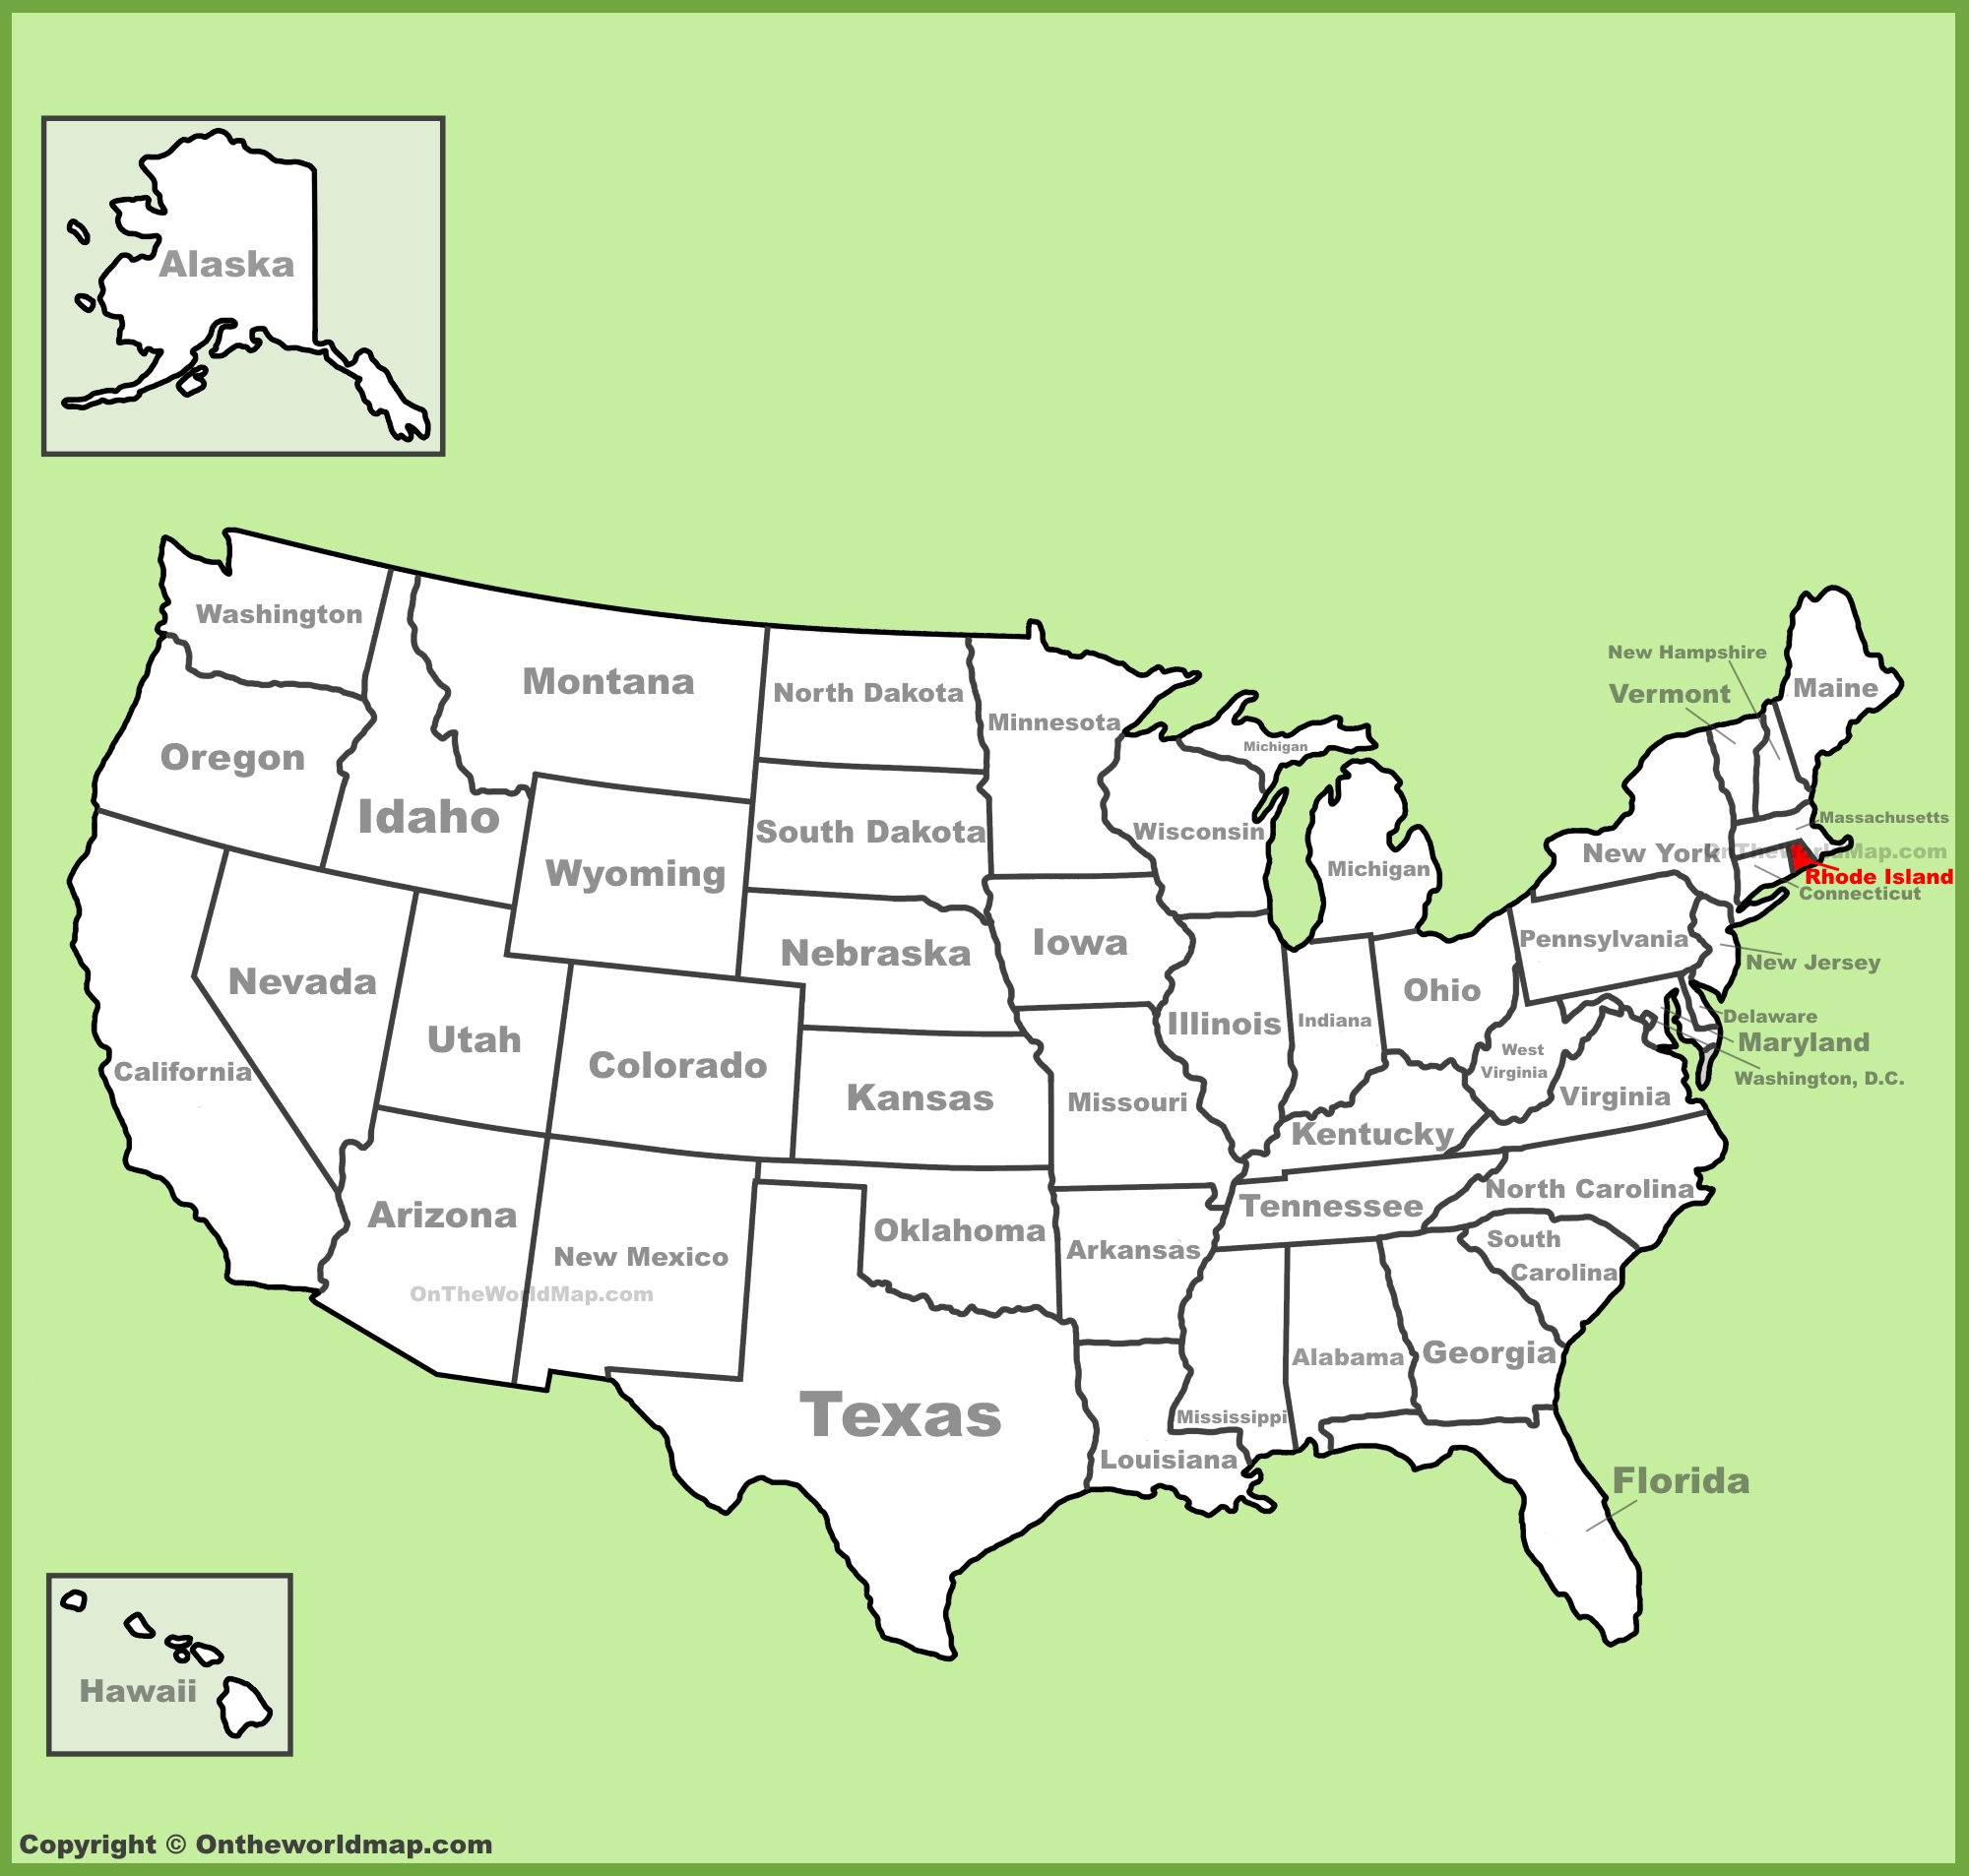 Rhode Island Location On The US Map - Road island usa map